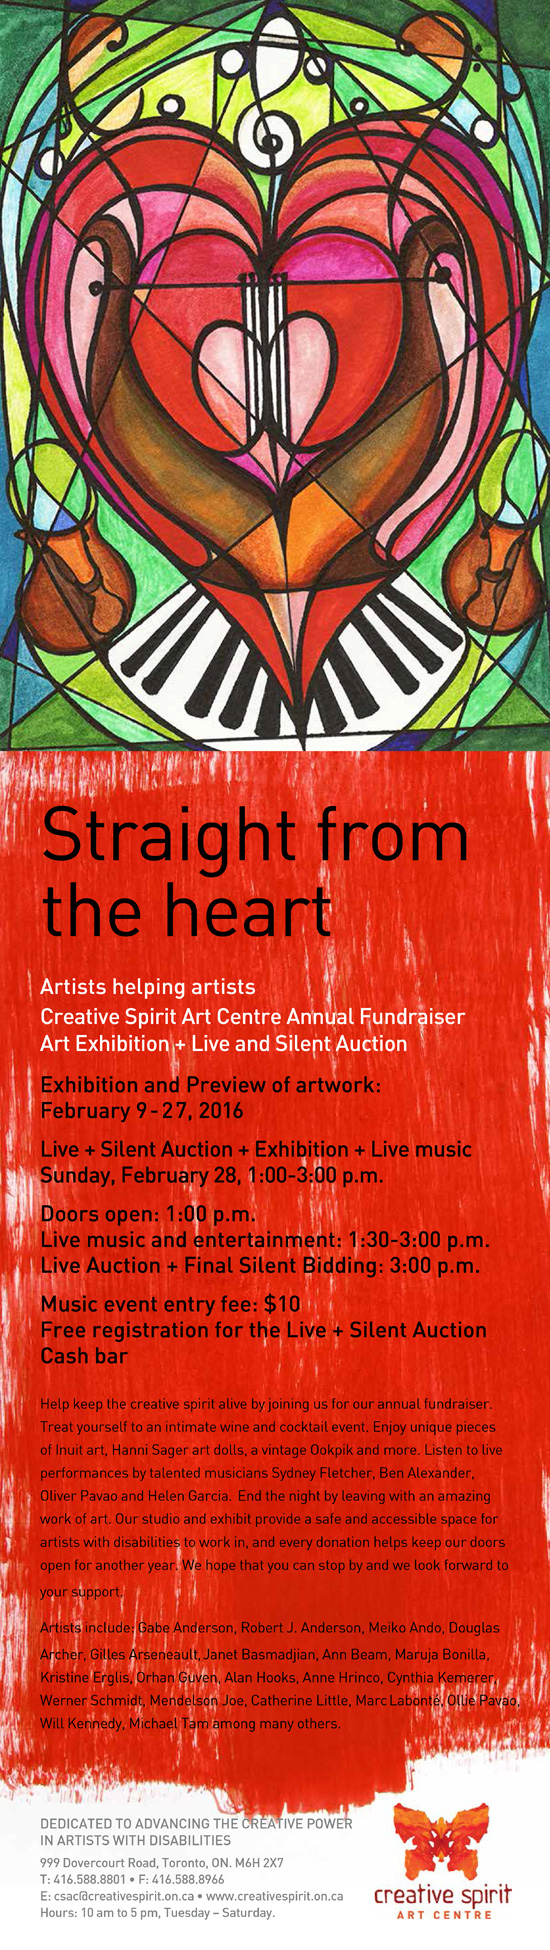 Straight from the Heart 2016 - Annual CSAC fundraiser